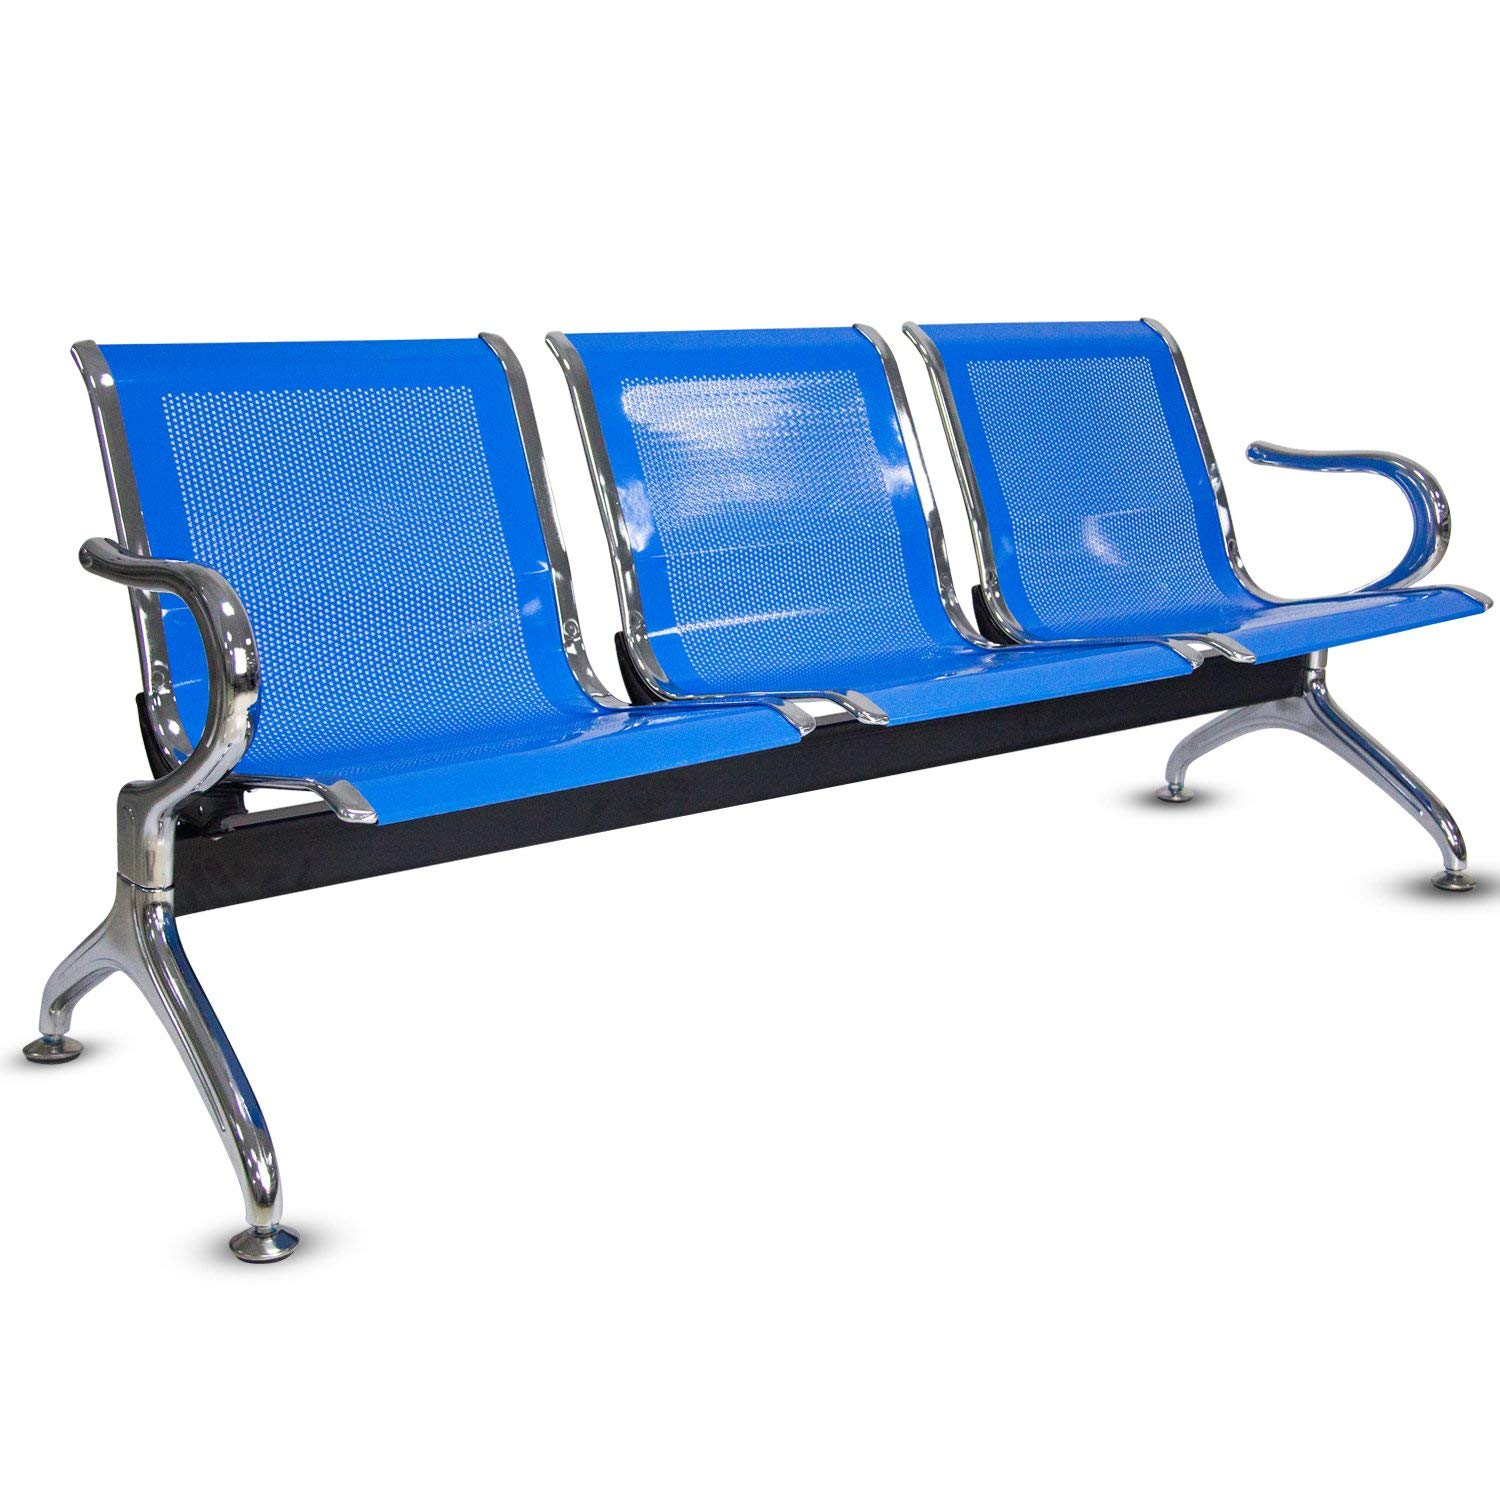 Airport Office Reception Waiting Area Bench Guest Chair Room Garden Salon Barber Bench (Blue, 3-Seat) by Kinbor